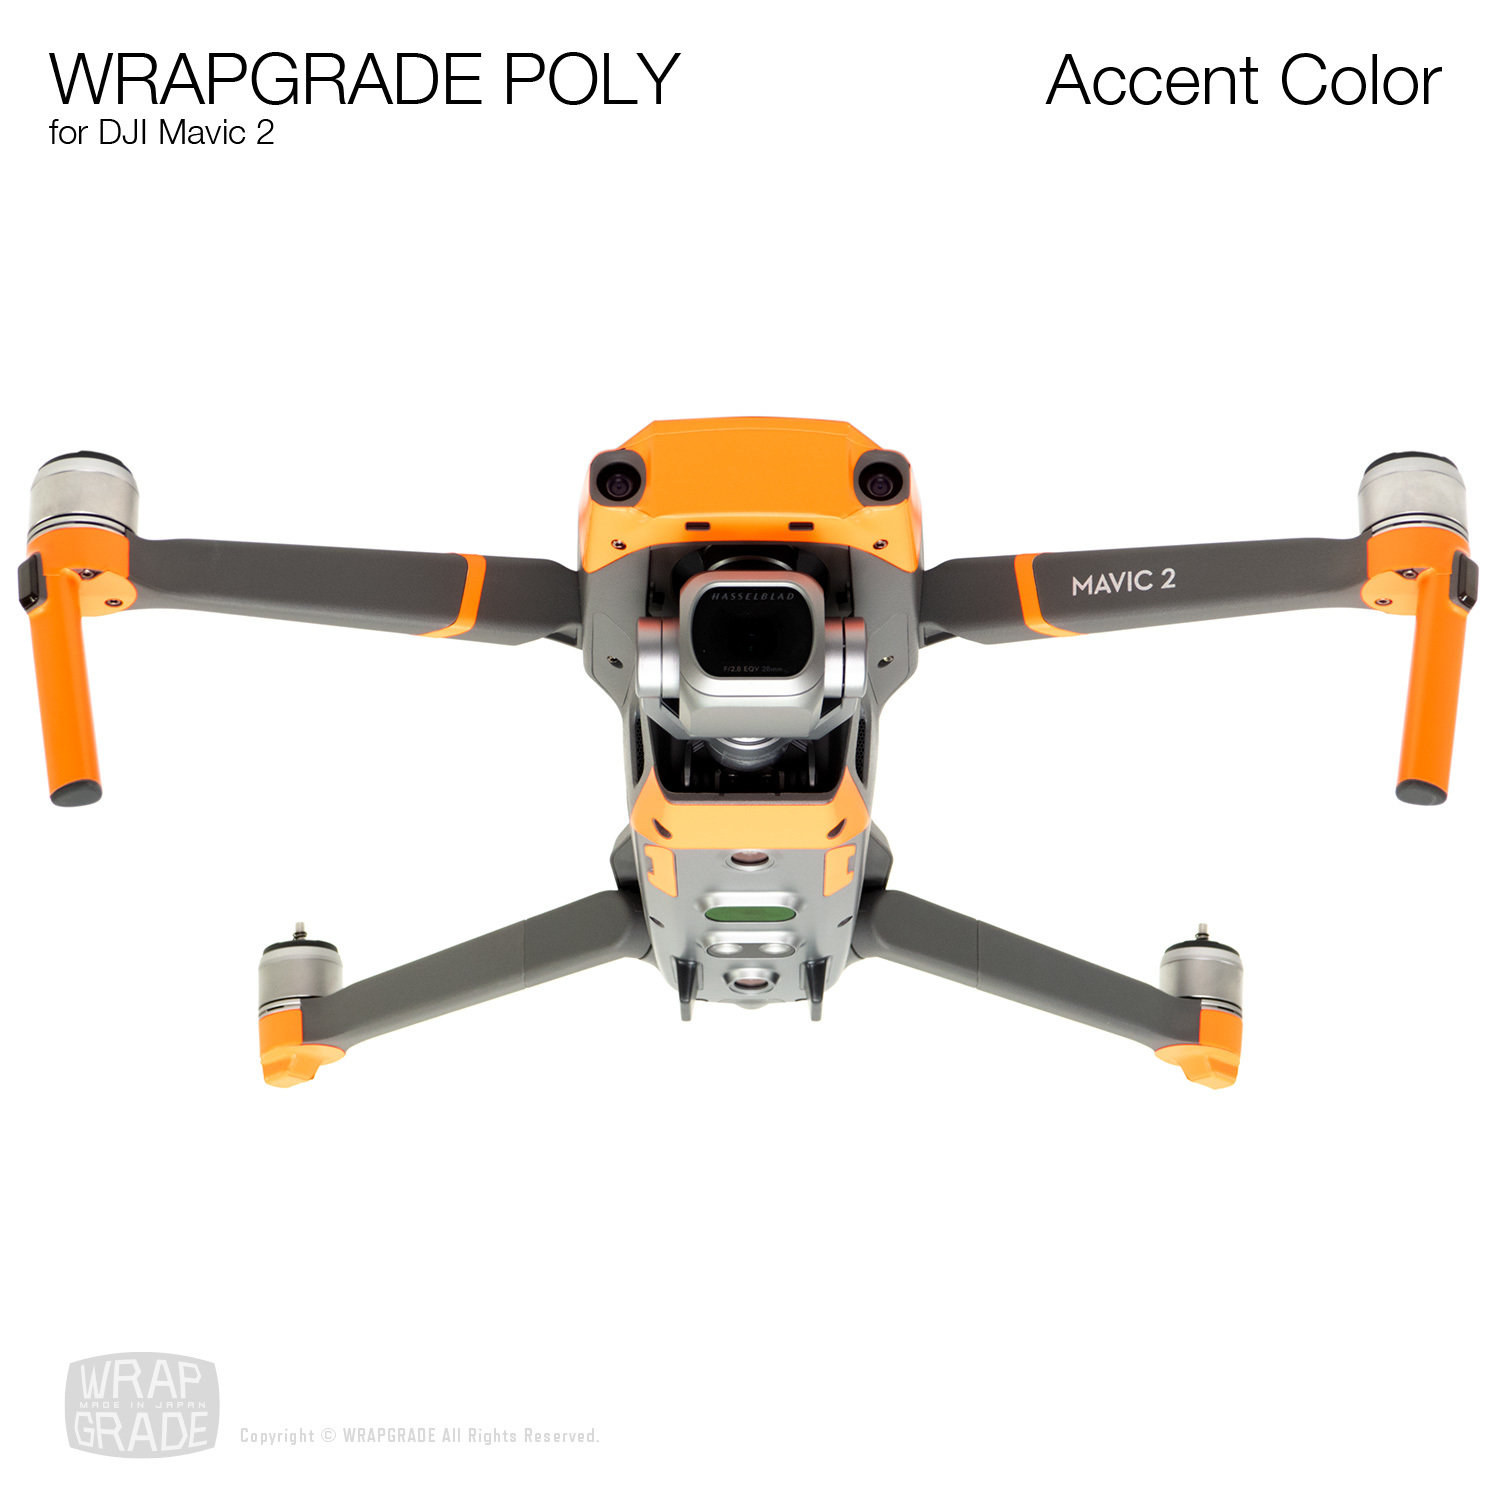 Wrapgrade Poly Skin for DJI Mavic 2 | Accent color [19 colors]